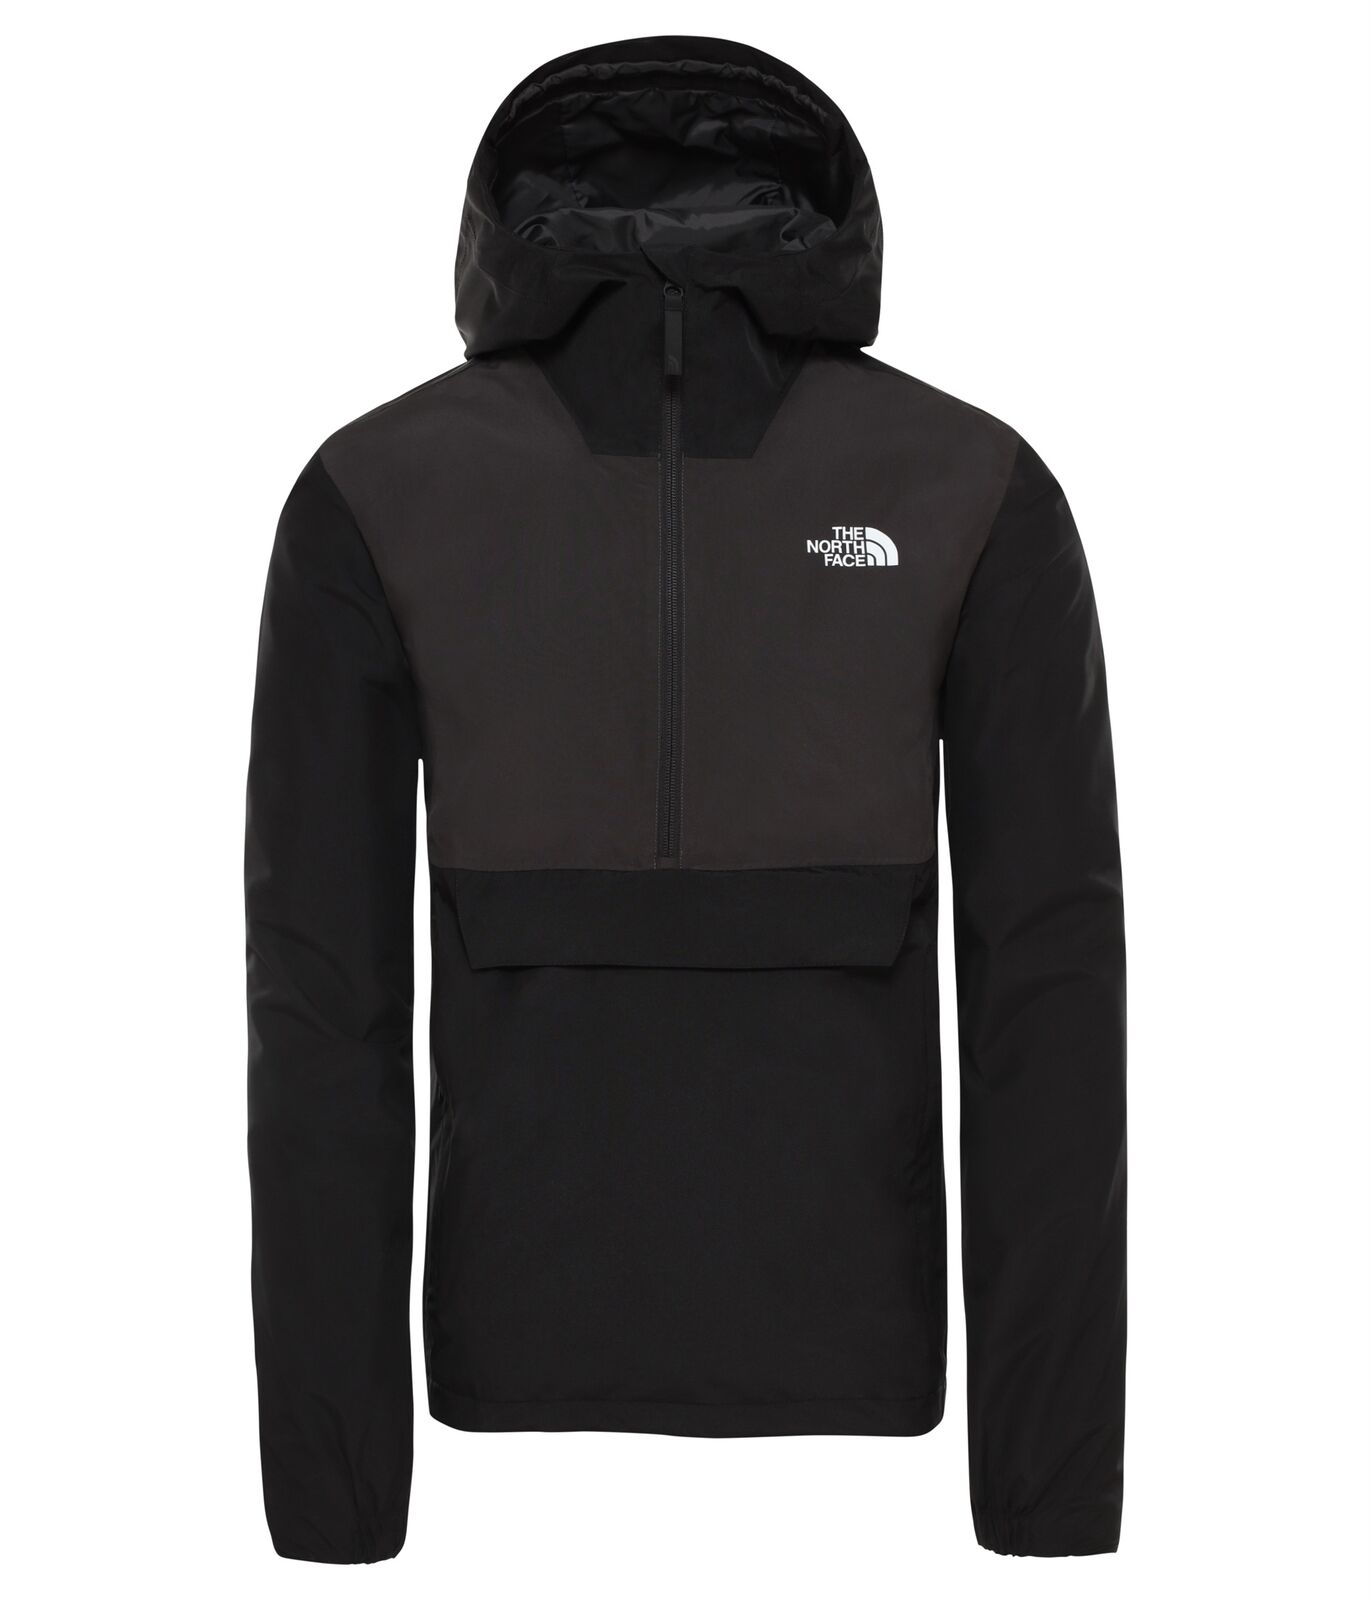 The North Face Uomo Giacca Pioggia WATERPROOF FRNK all'aperto